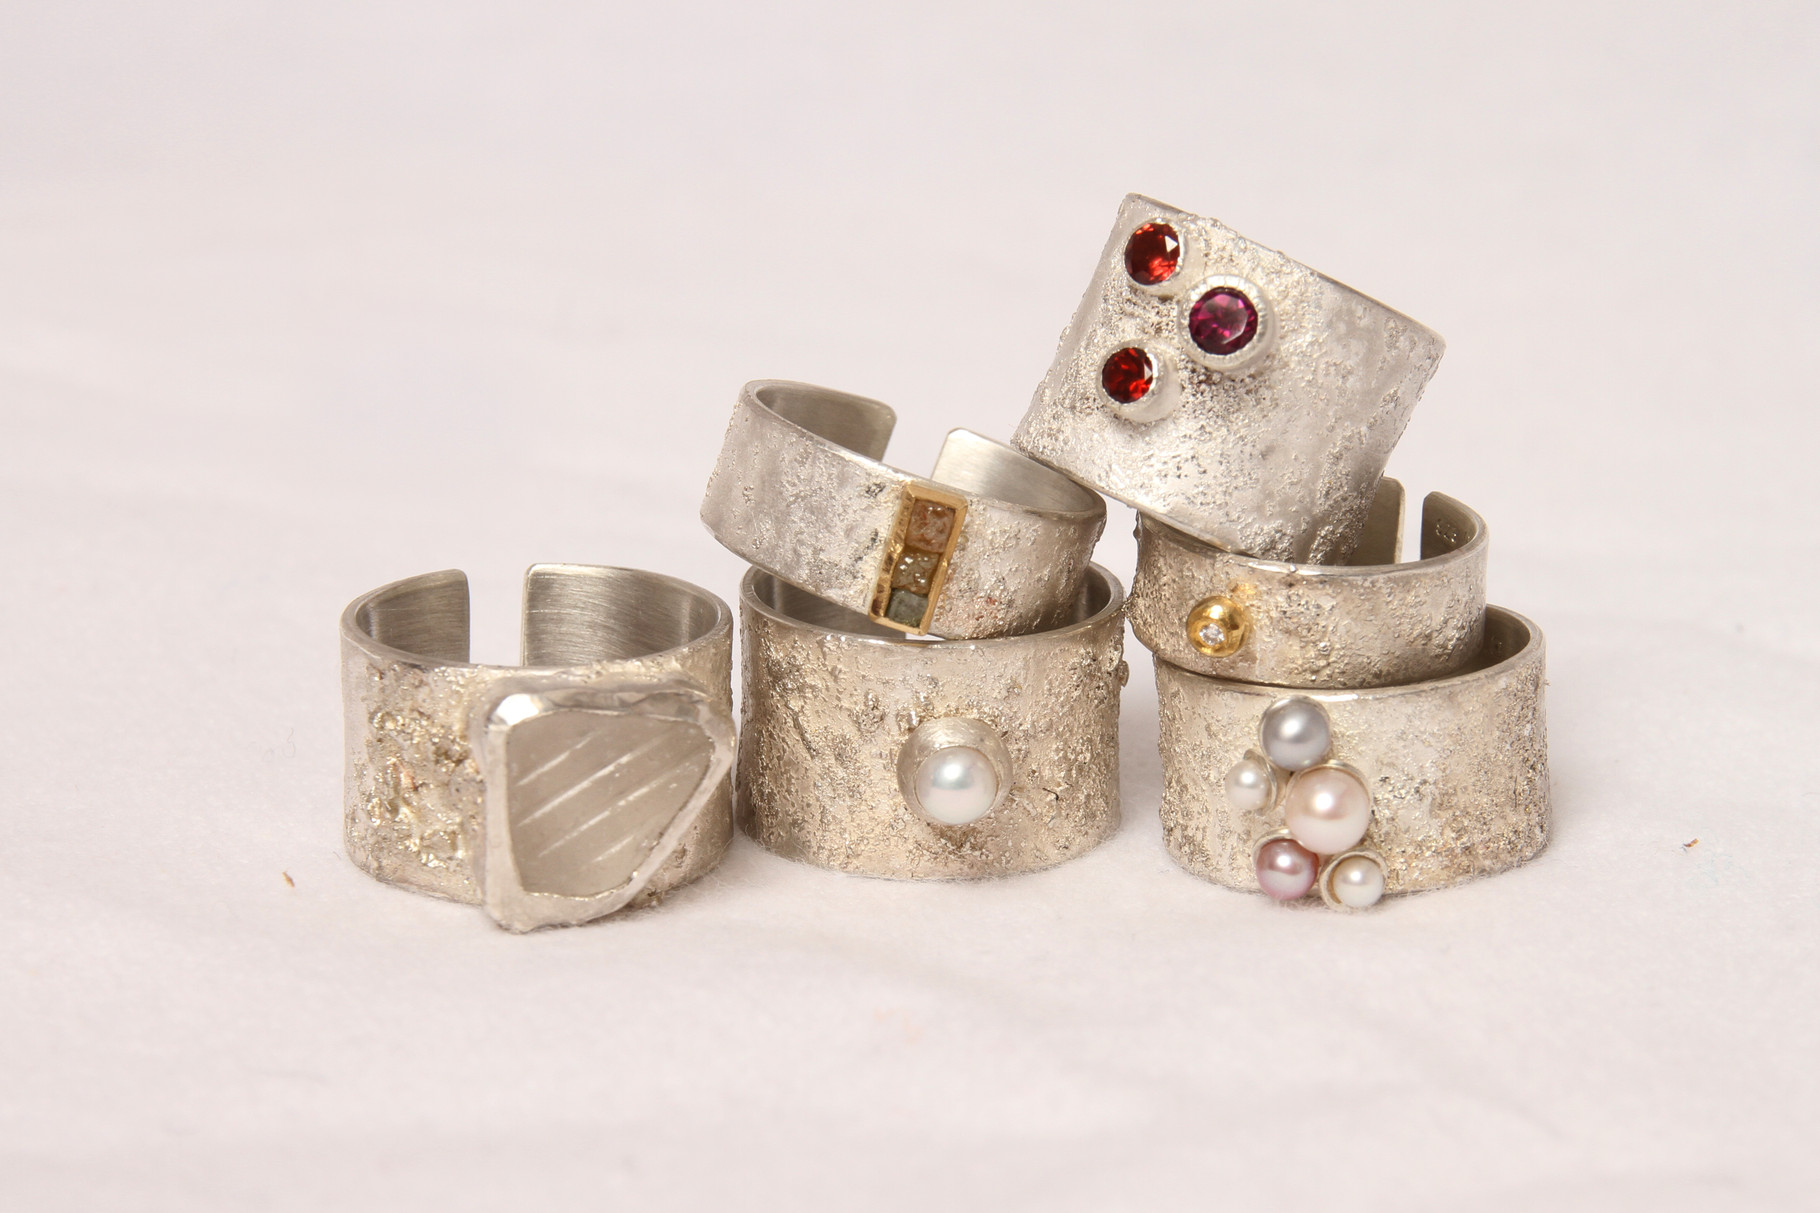 Rings, sterling silver, gems, glass, pearls, diamond